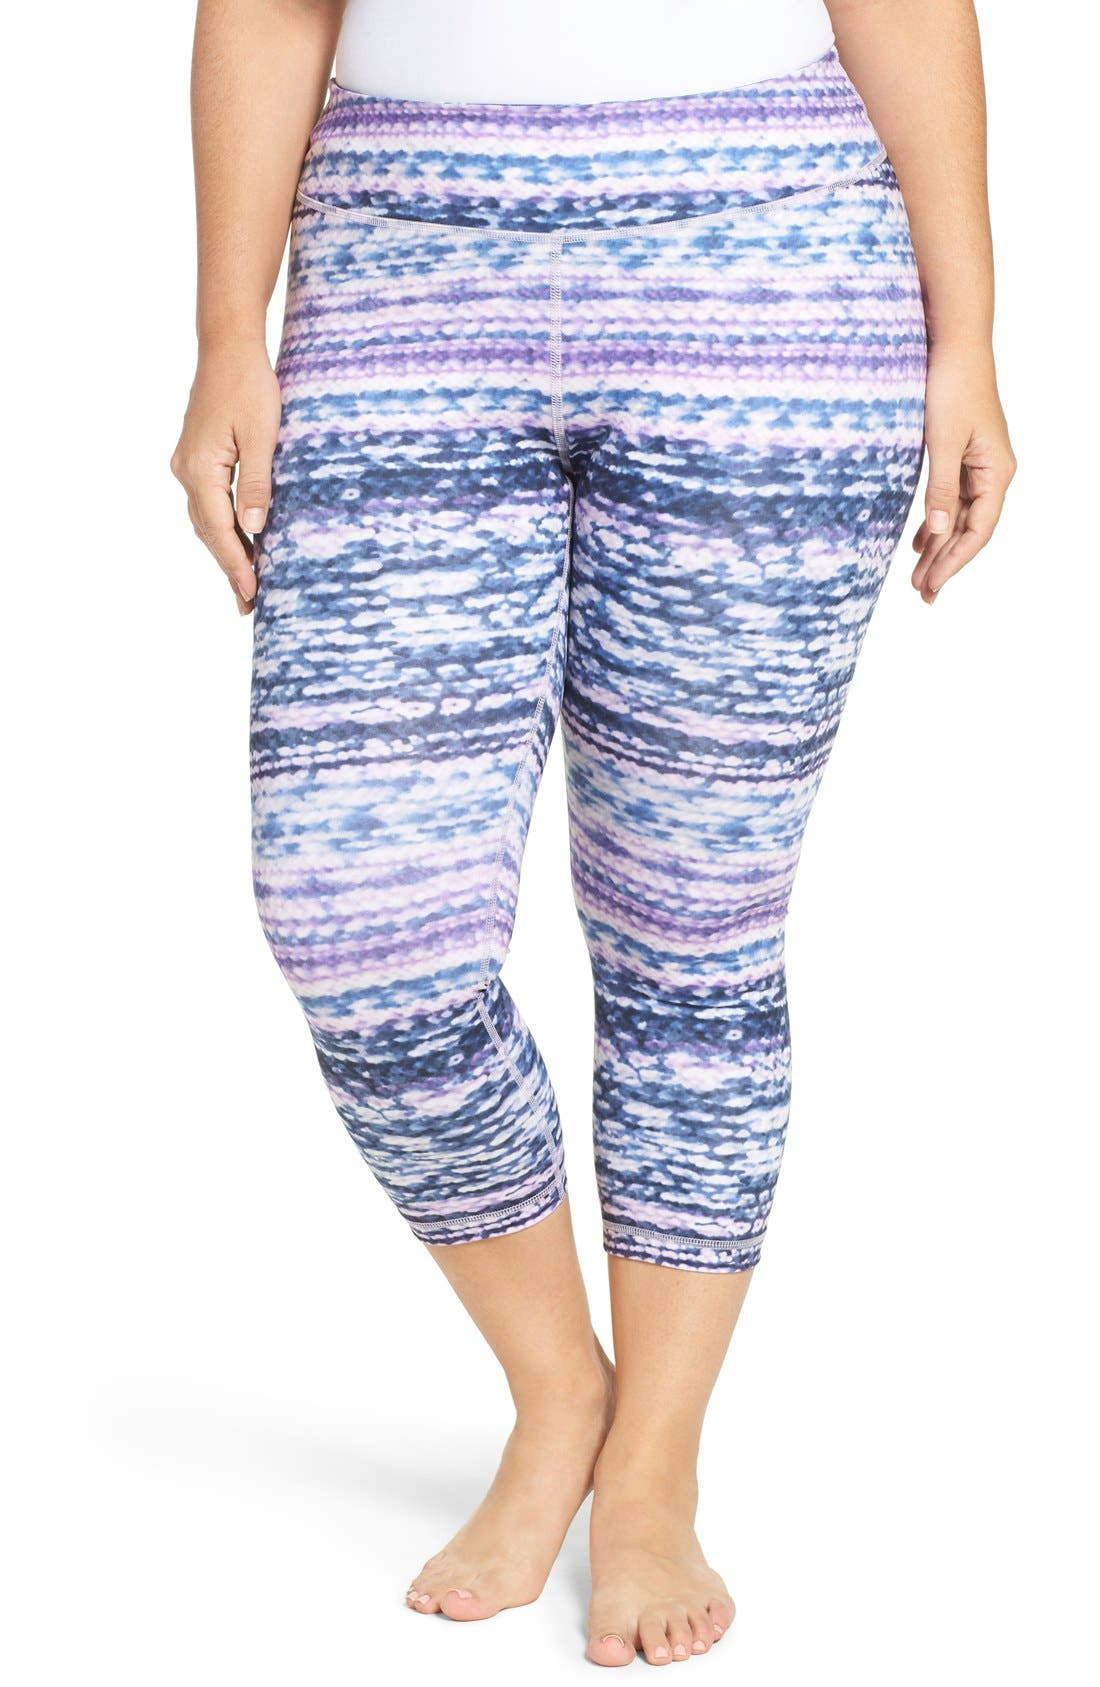 Alternate Image 1 Selected - Zella Print Crop Leggings (Plus Size)